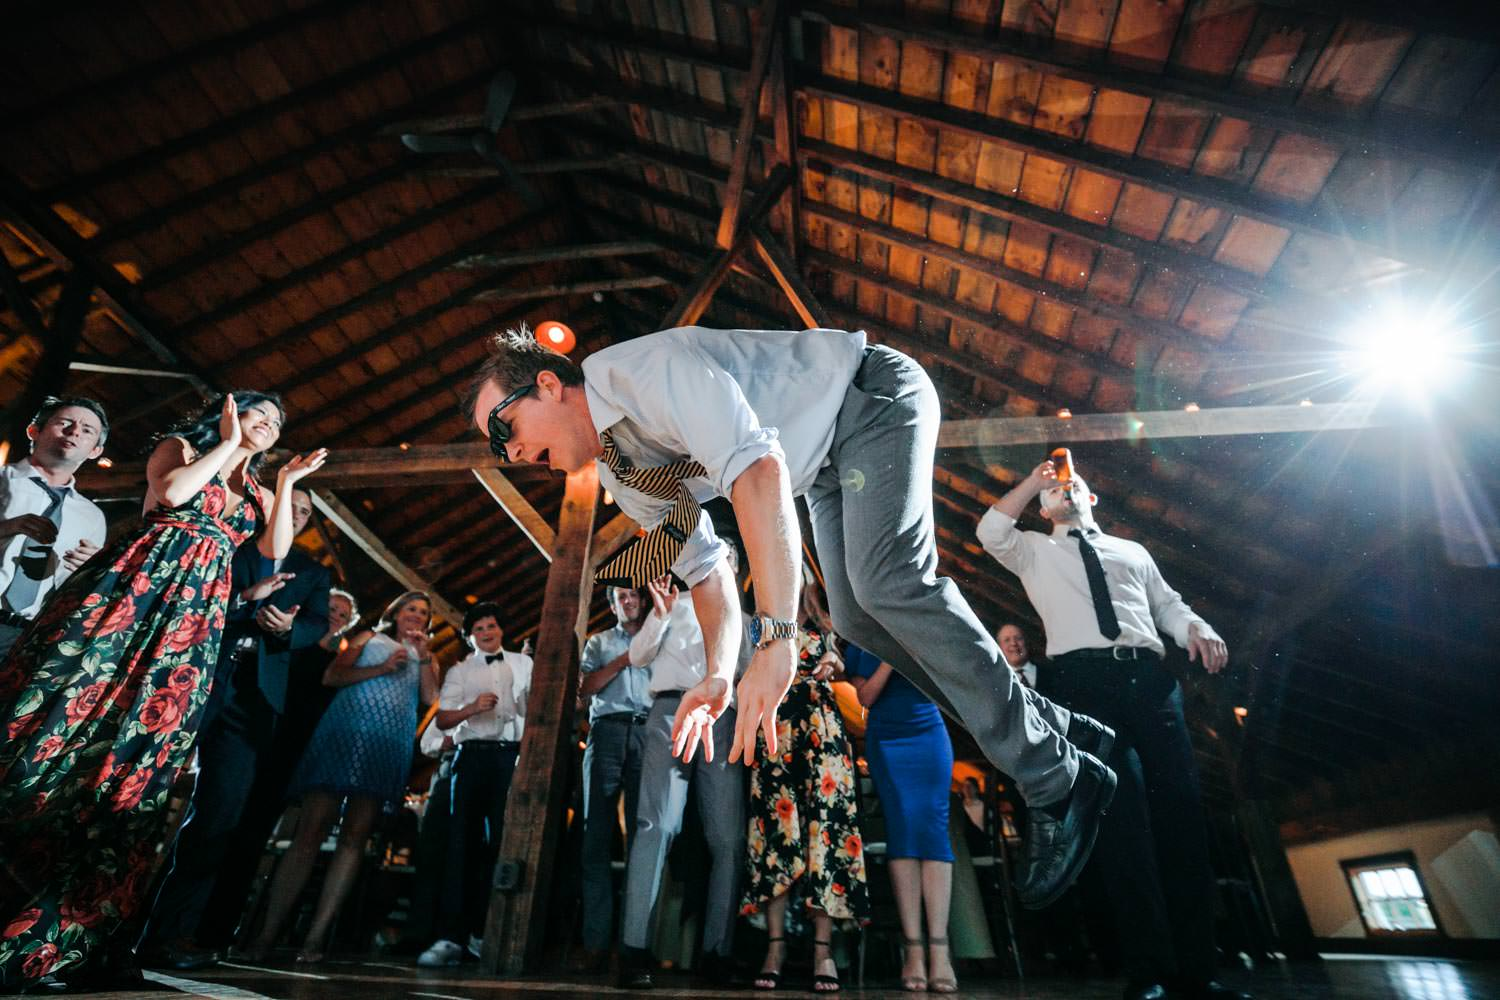 vermont wedding guest dances with full body horizontal in the air, lucky photographer captures the moment